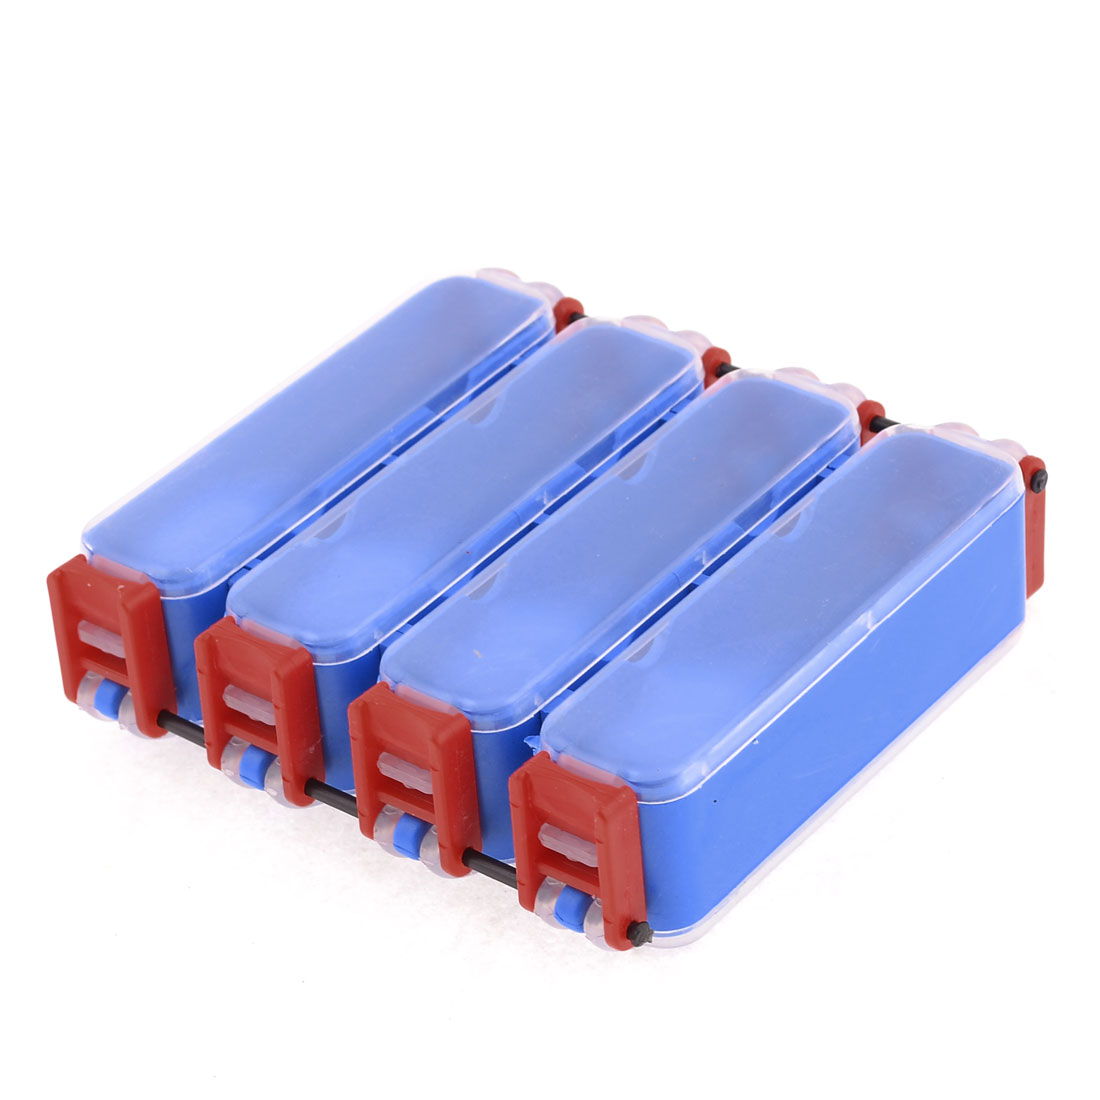 Unique Bargains Double Sides 8 Compartments Fishing Tackle Box Hook Lure Case by